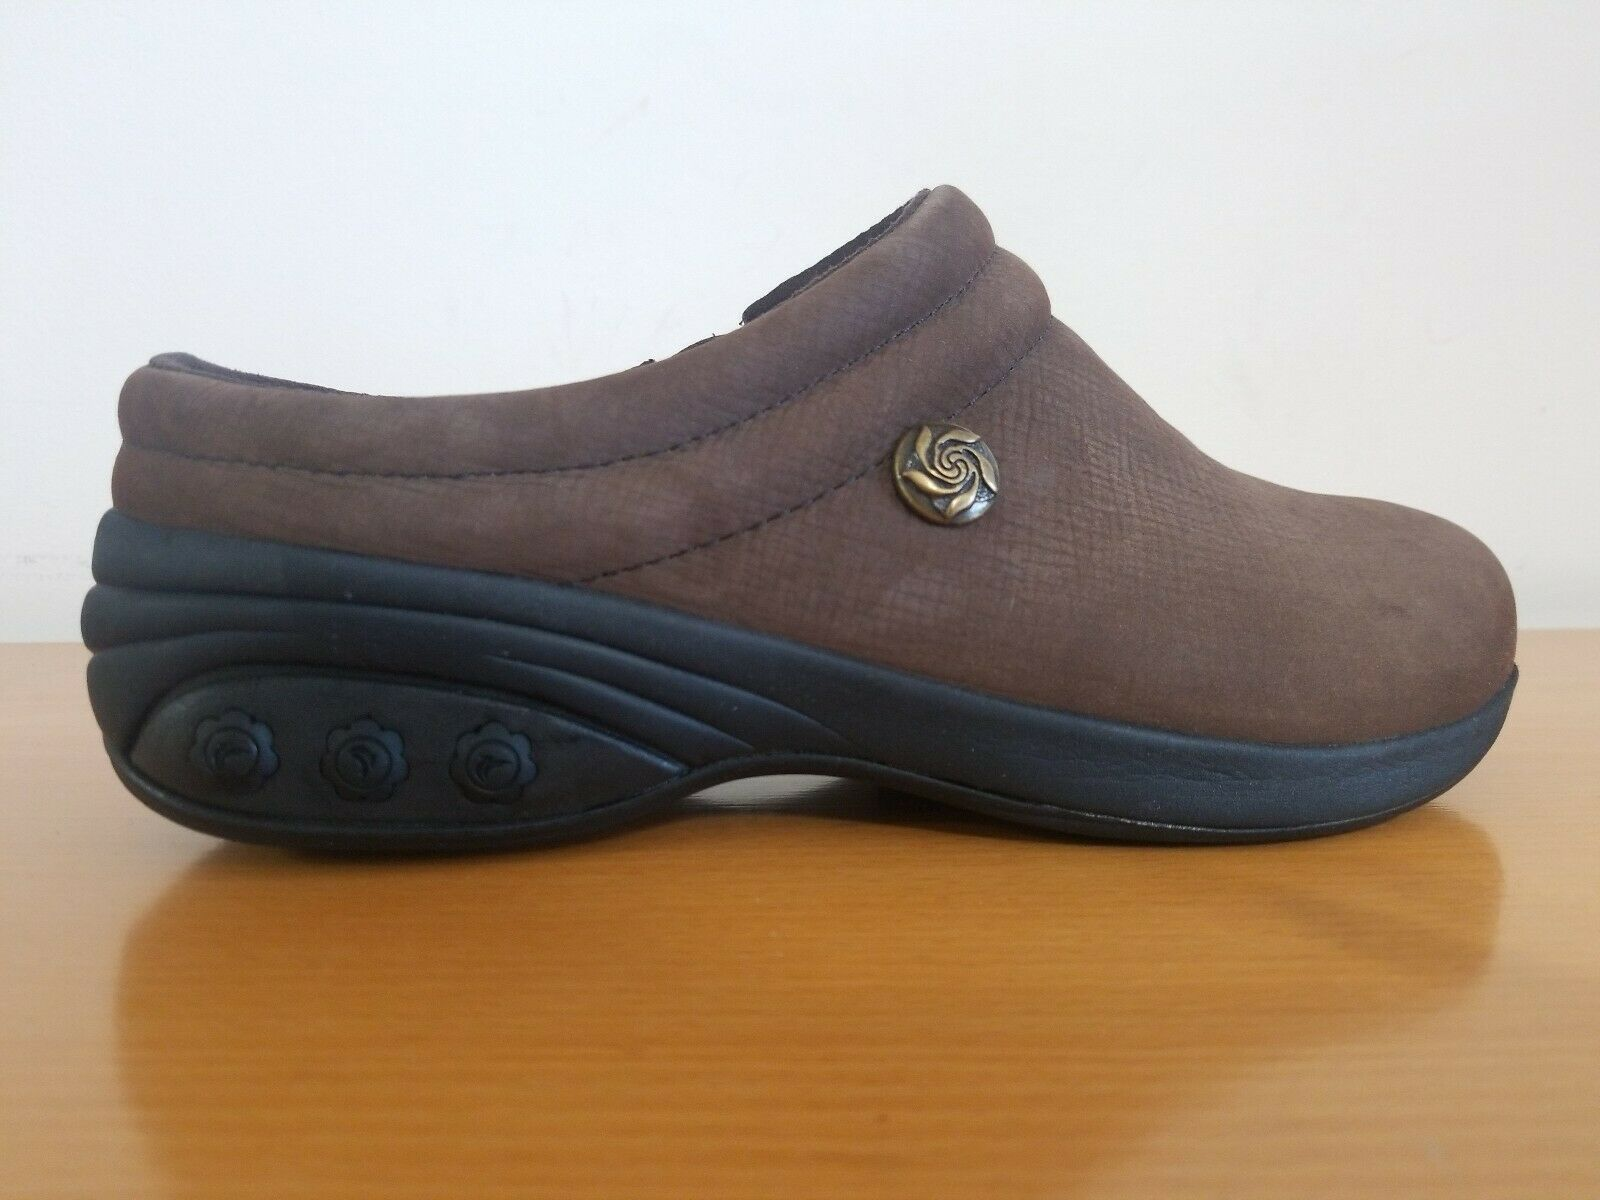 Therafit Molly Brown Women's Clogs With Superior Arch Support - Size EU 37 - NEW